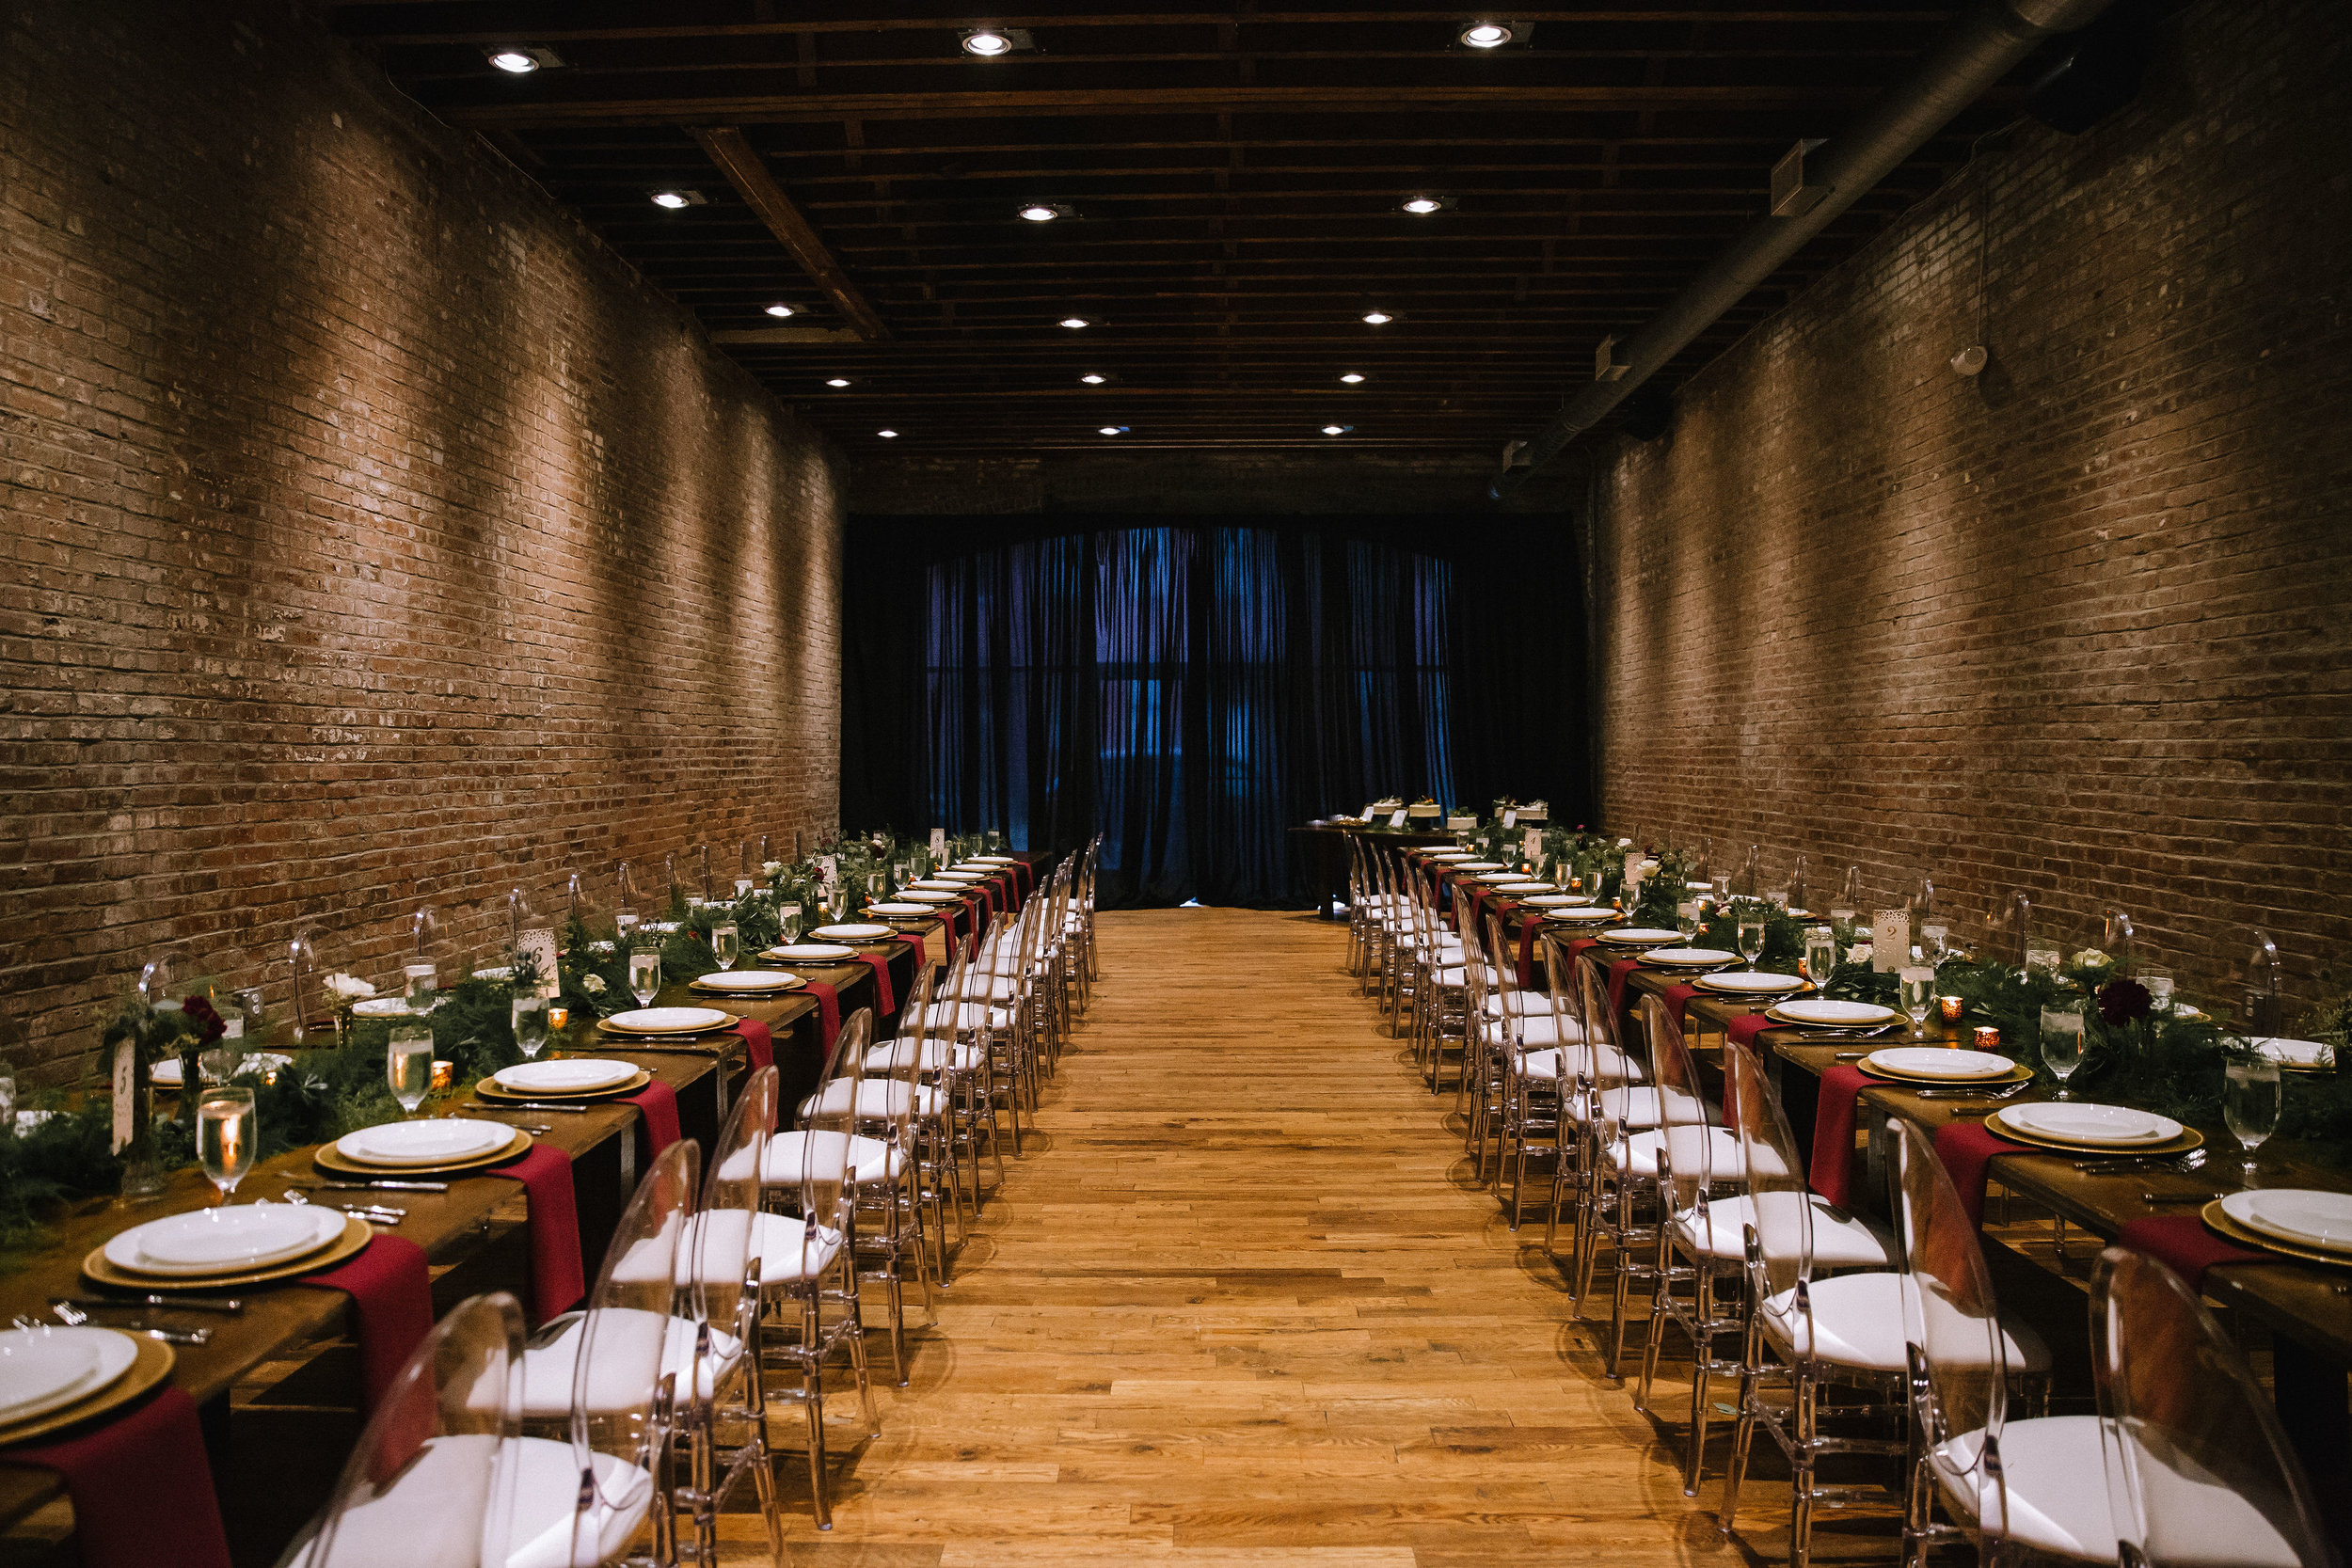 Wedding reception design with family style tables with greenery for Pittsburgh wedding at Studio Slate planned by Exhale Events. Find more wedding inspiration at exhale-events.com!